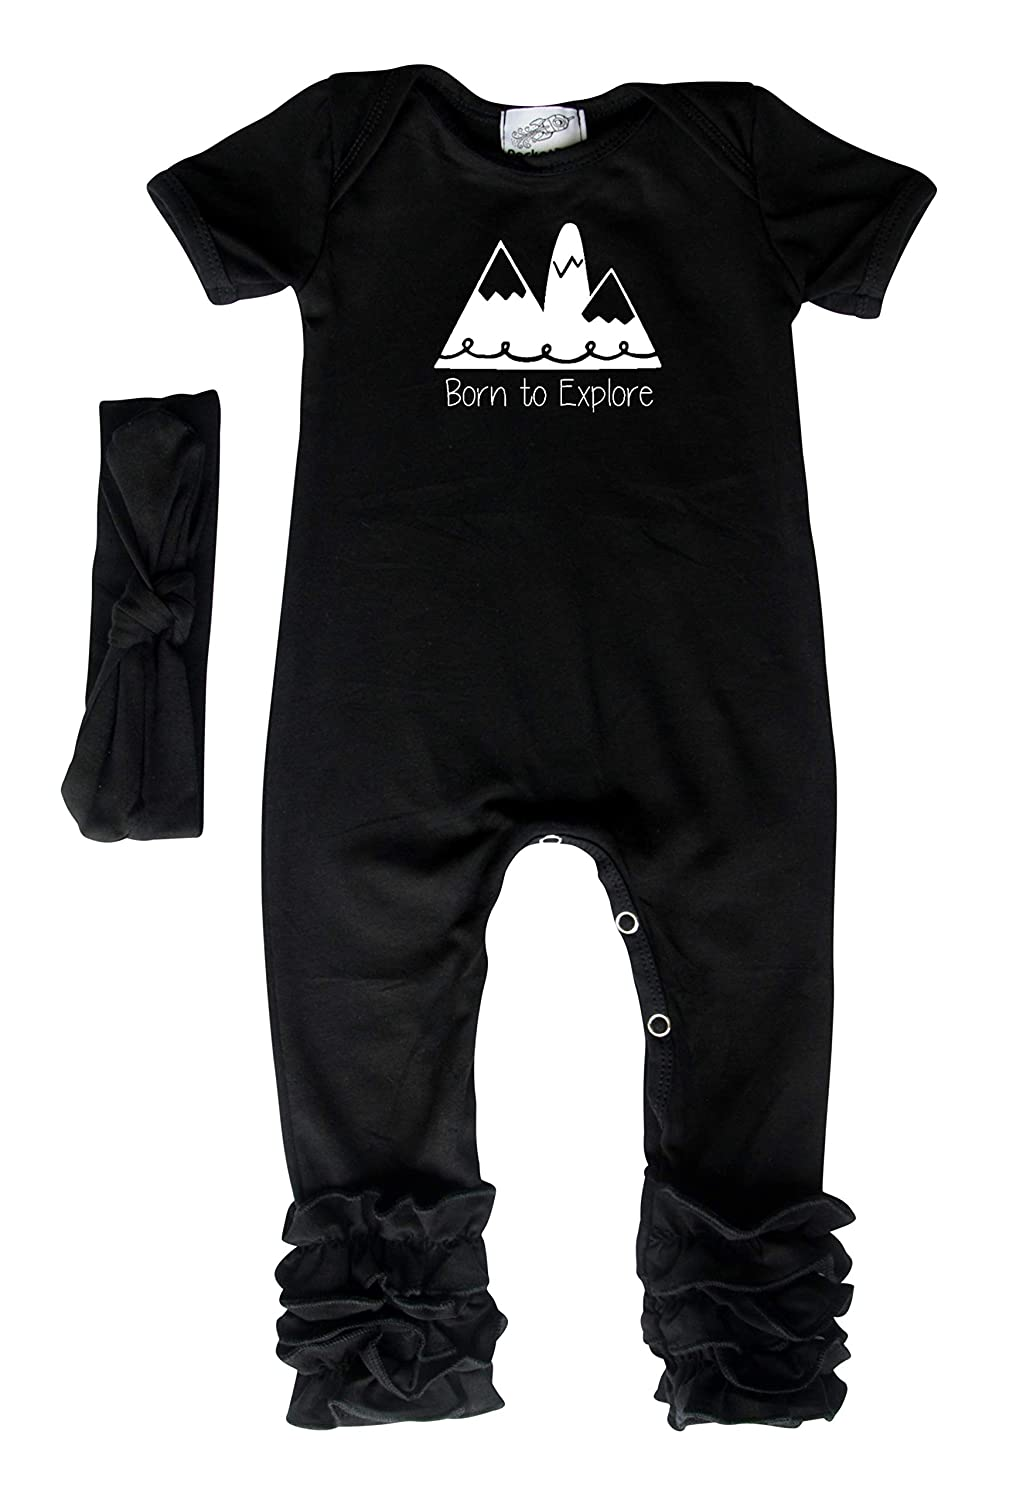 Born to Explore Baby Romper and Bodysuit for Boys and Girls